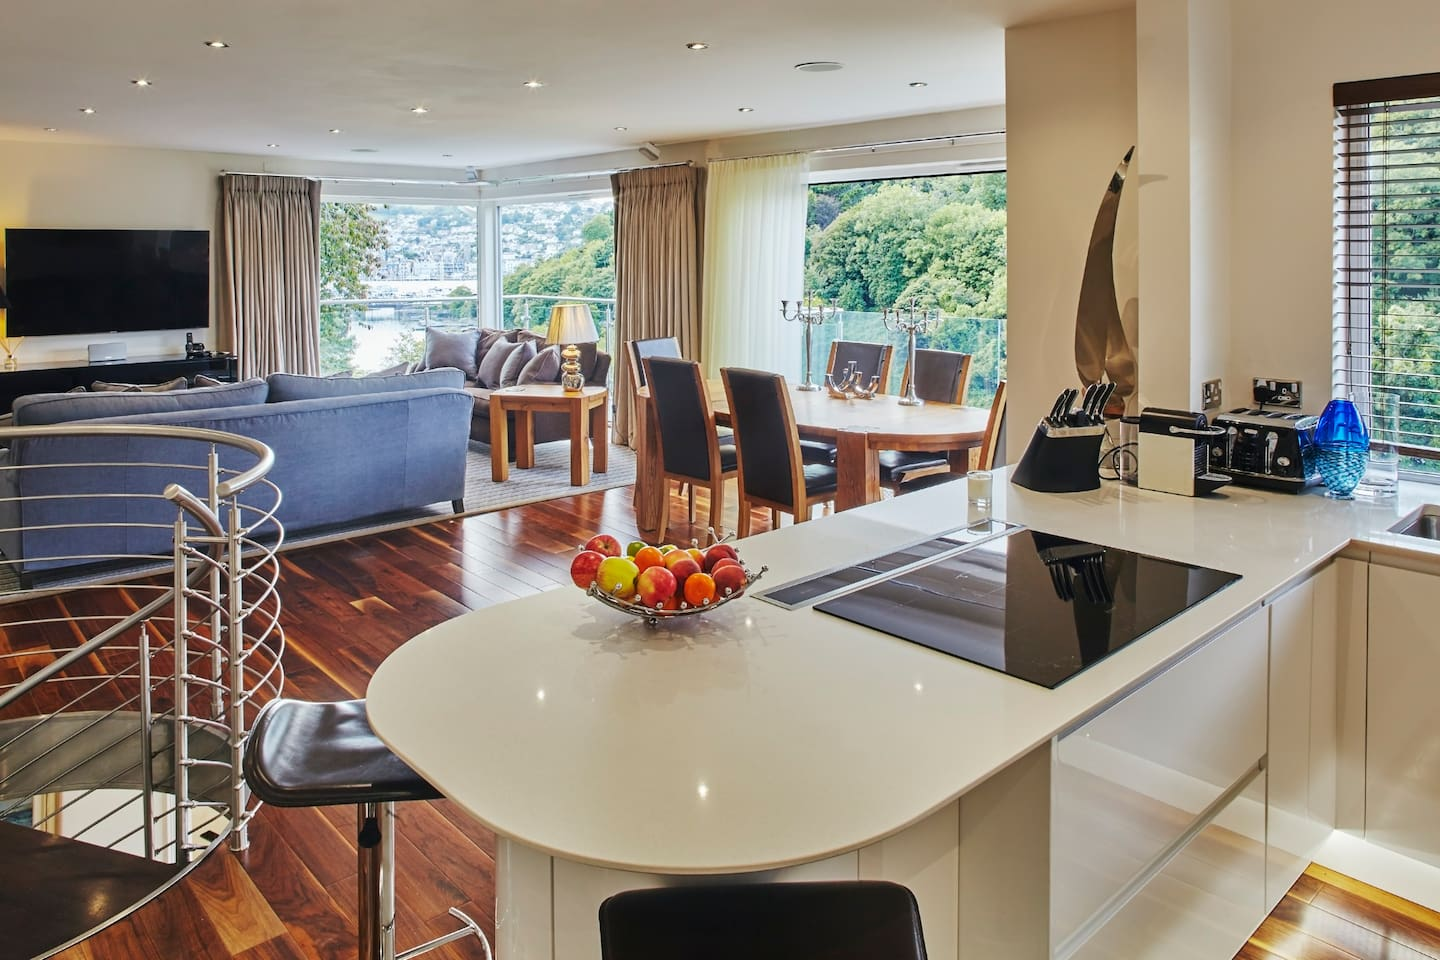 Kitchen, Dining & Lounge Room showing the views